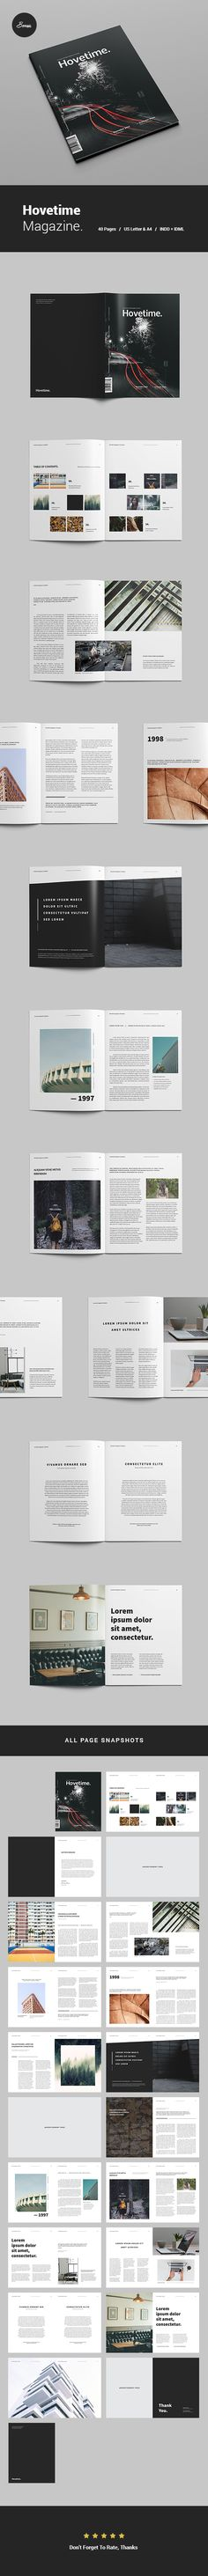 Clean & modern layout InDesign magazine template.With total of 40 pages…